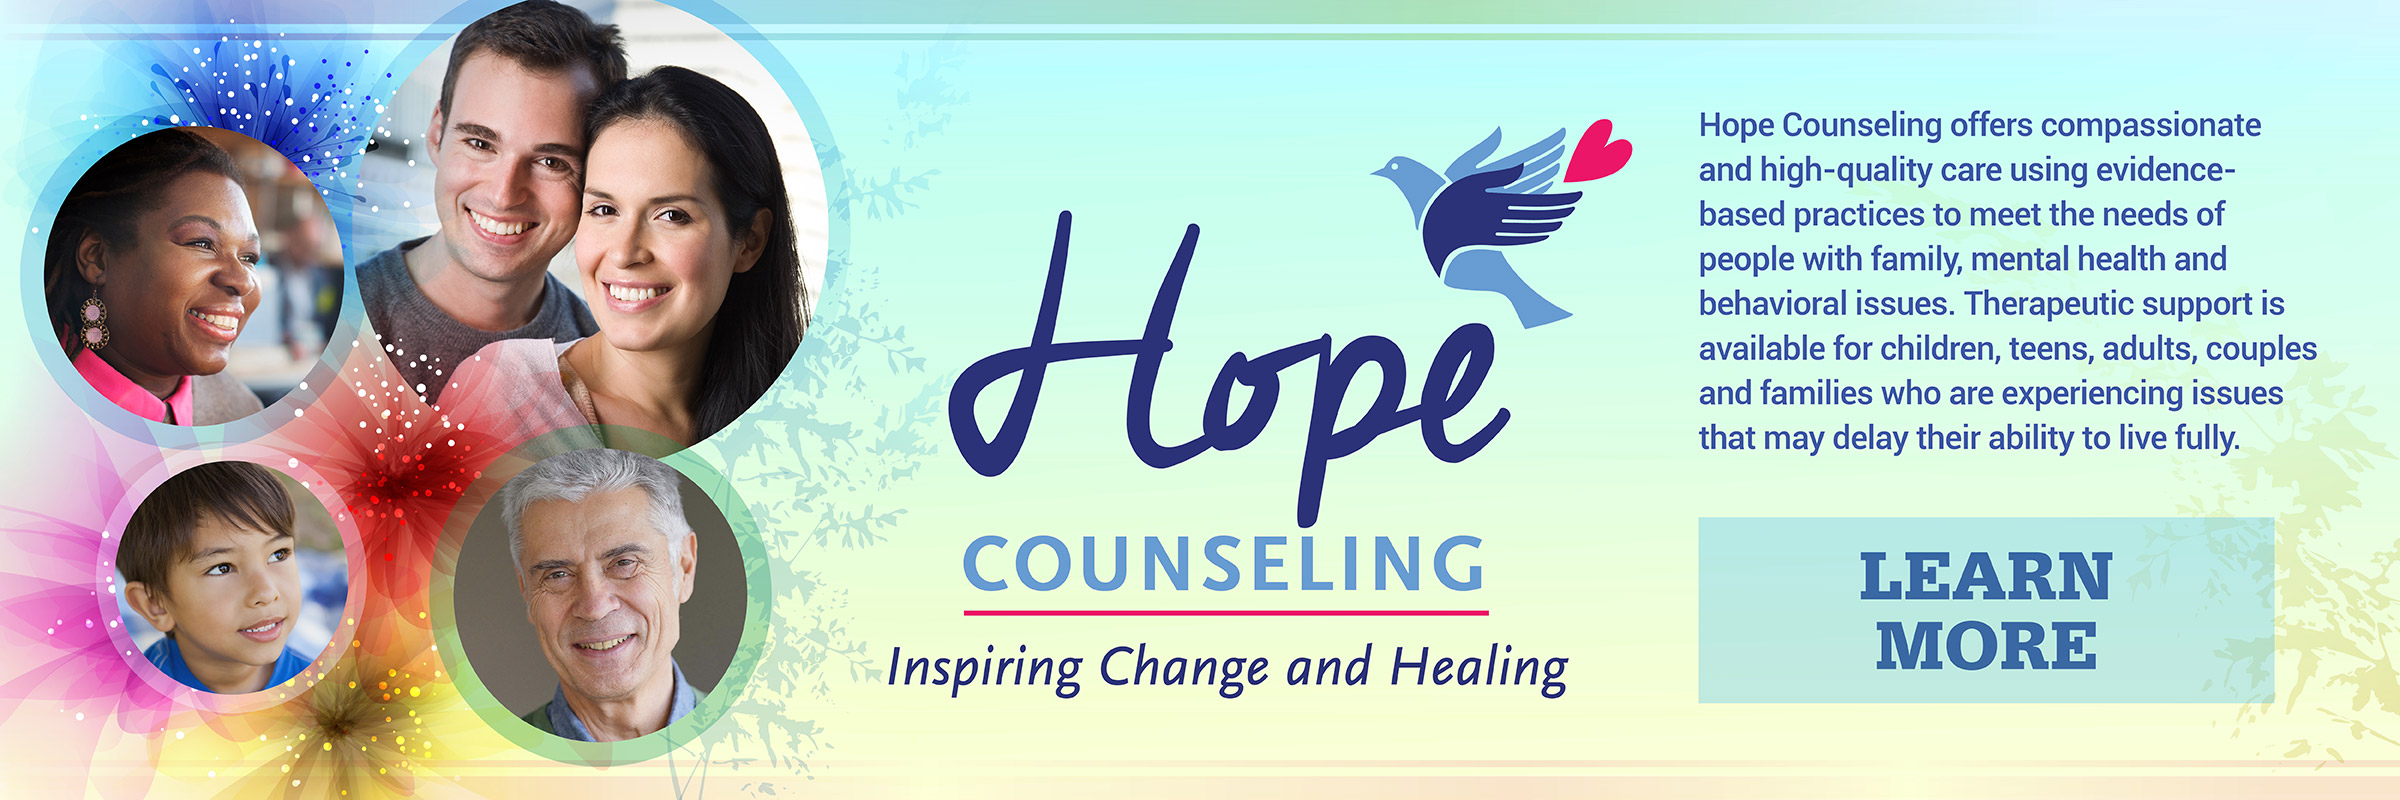 Hope-Counseling_Carousel